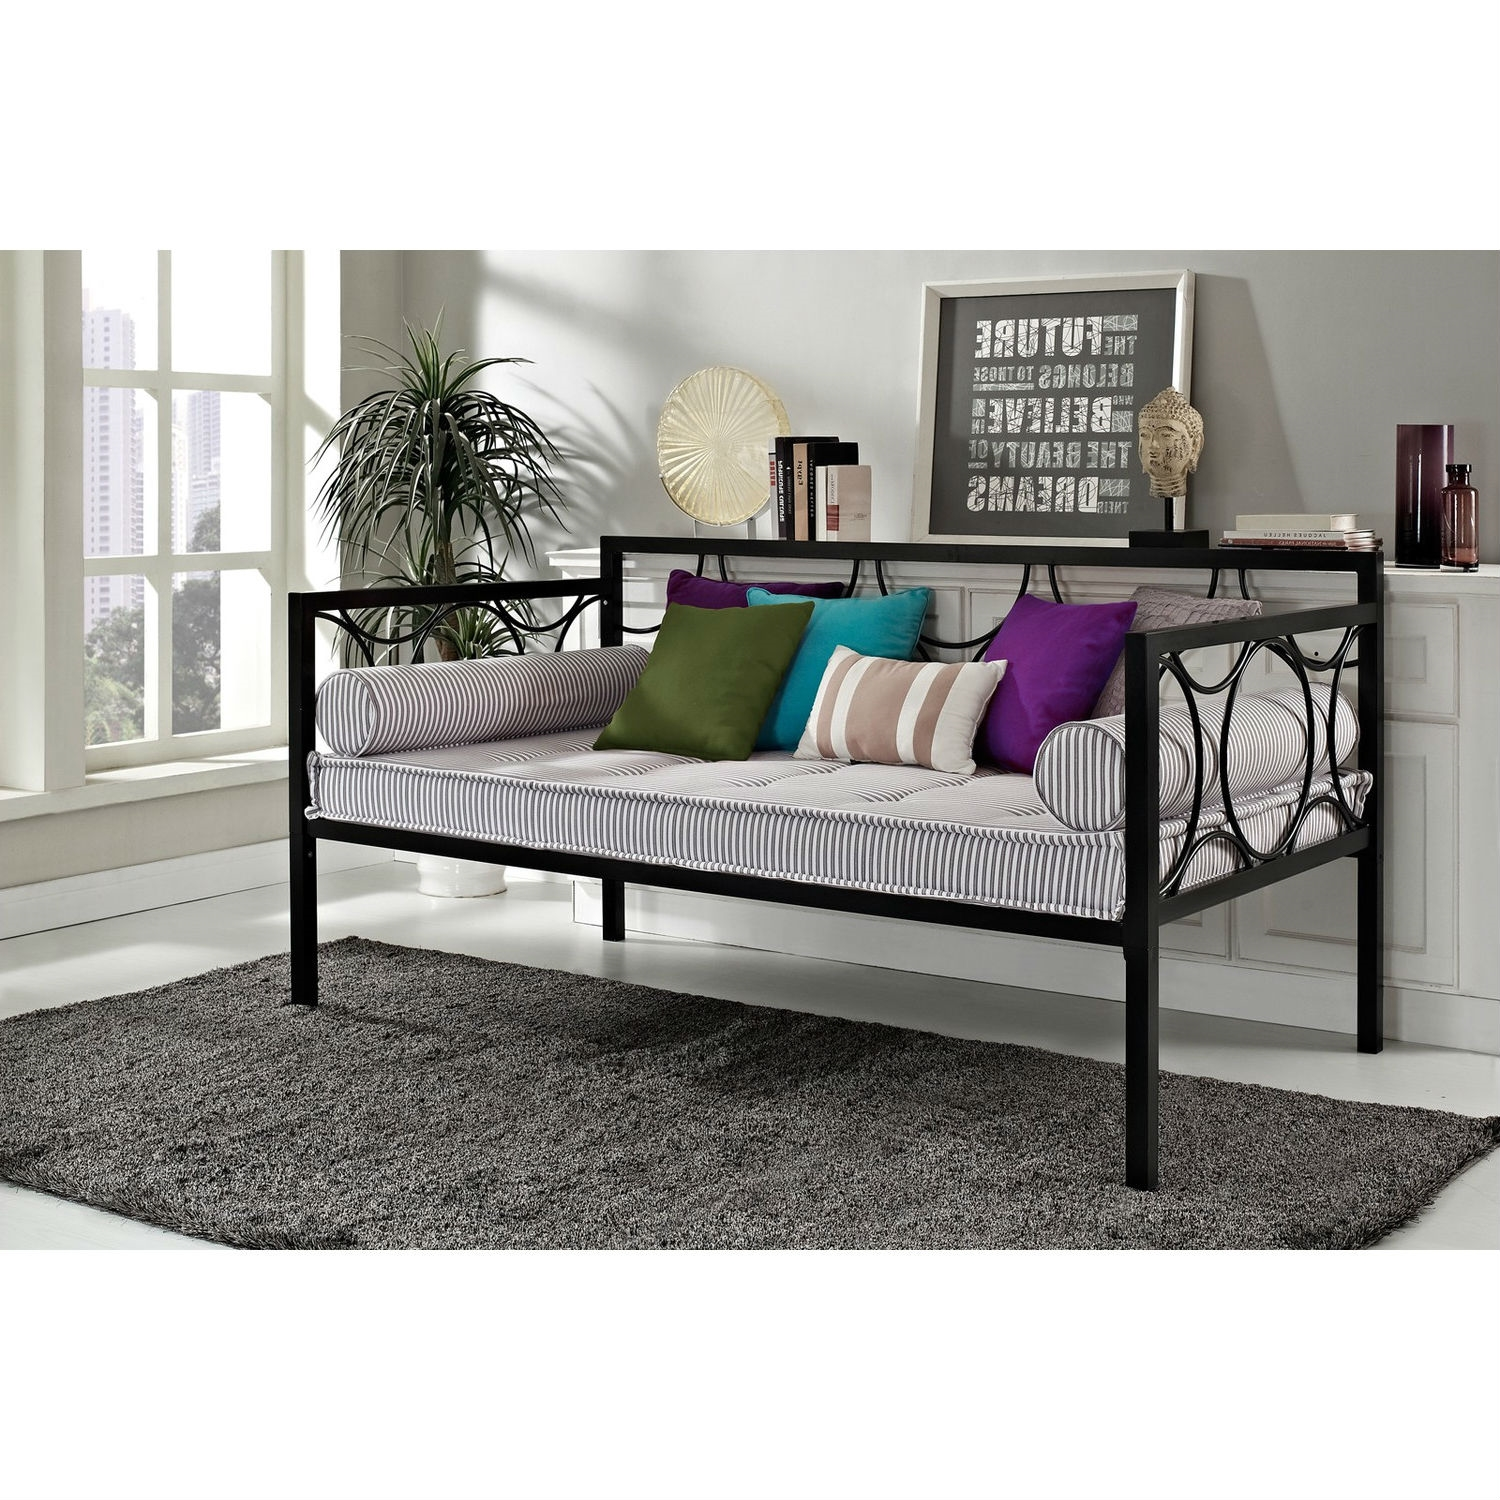 Twin size Modern Black Metal Daybeds Use as Bed or Seating